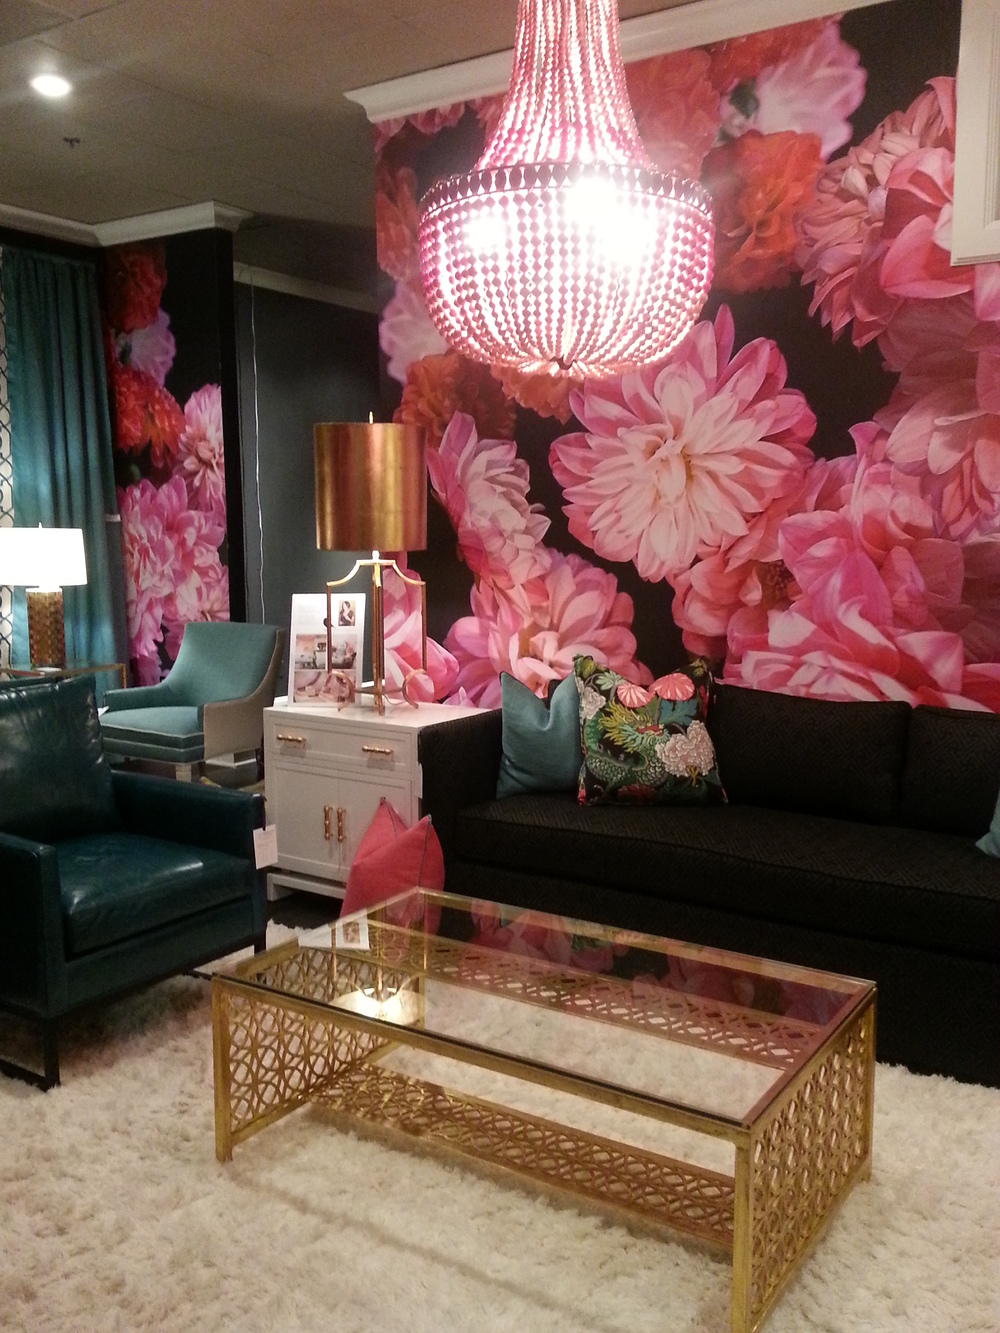 There is so much color going on in this vignette. Through wallpaper, fabrics, lighting, it's just an explosion of happy color. I really enjoyed being in this space. (Another awesome vignette by CR Laine)